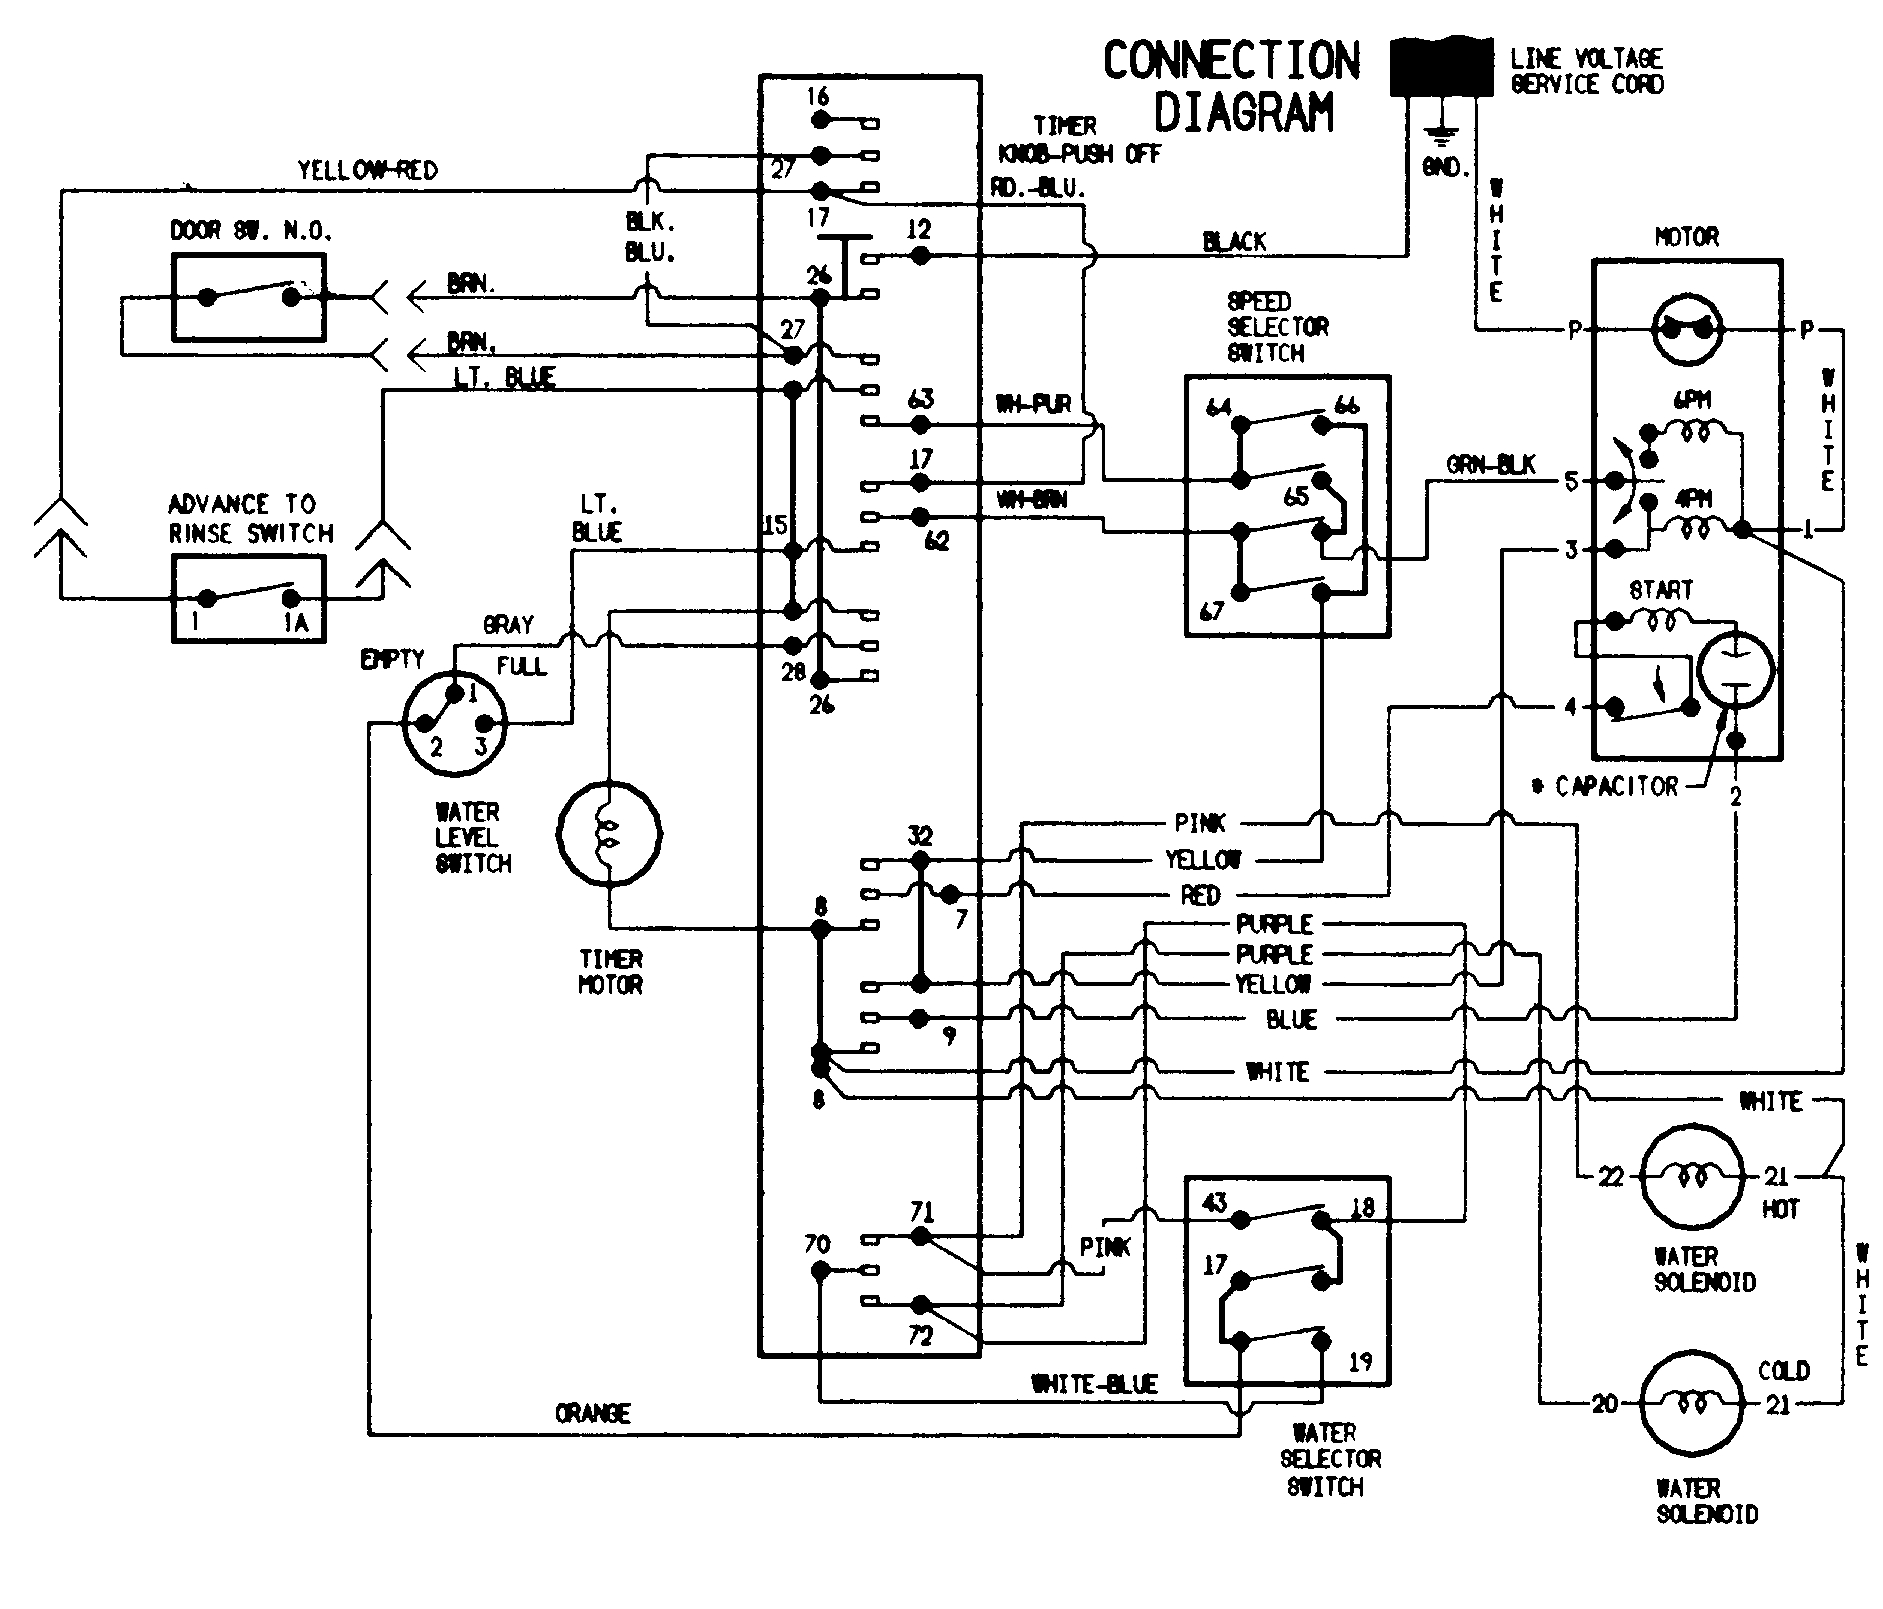 whirlpool duet dryer heating element wiring diagram Download-Whirlpool Duet Dryer Heating Element Wiring Diagram Fresh Maytag Washer Parts Model Pav2000aww 11-m